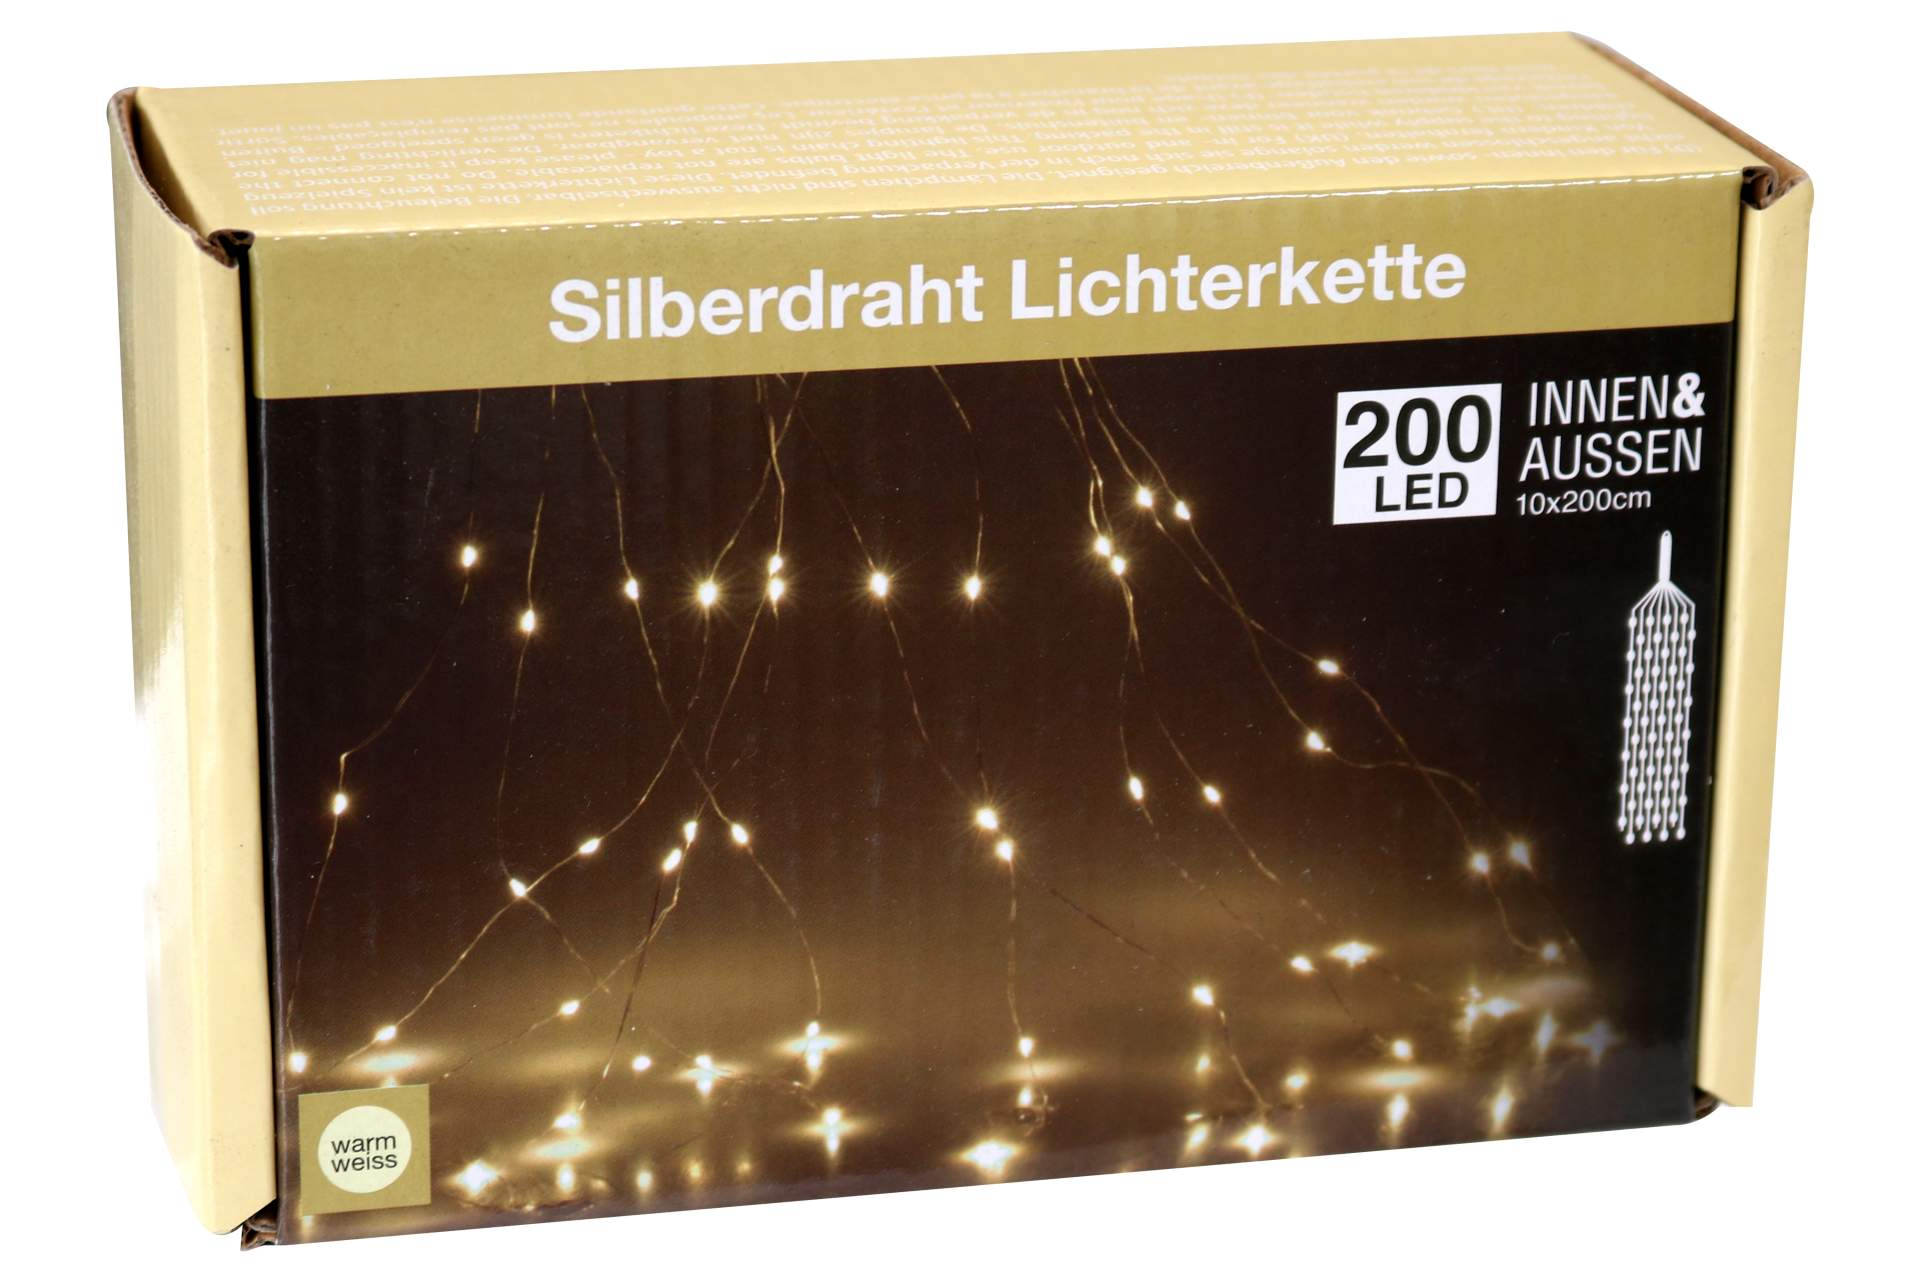 silberdraht lichterkette warmweiss 200 led f r au en und. Black Bedroom Furniture Sets. Home Design Ideas